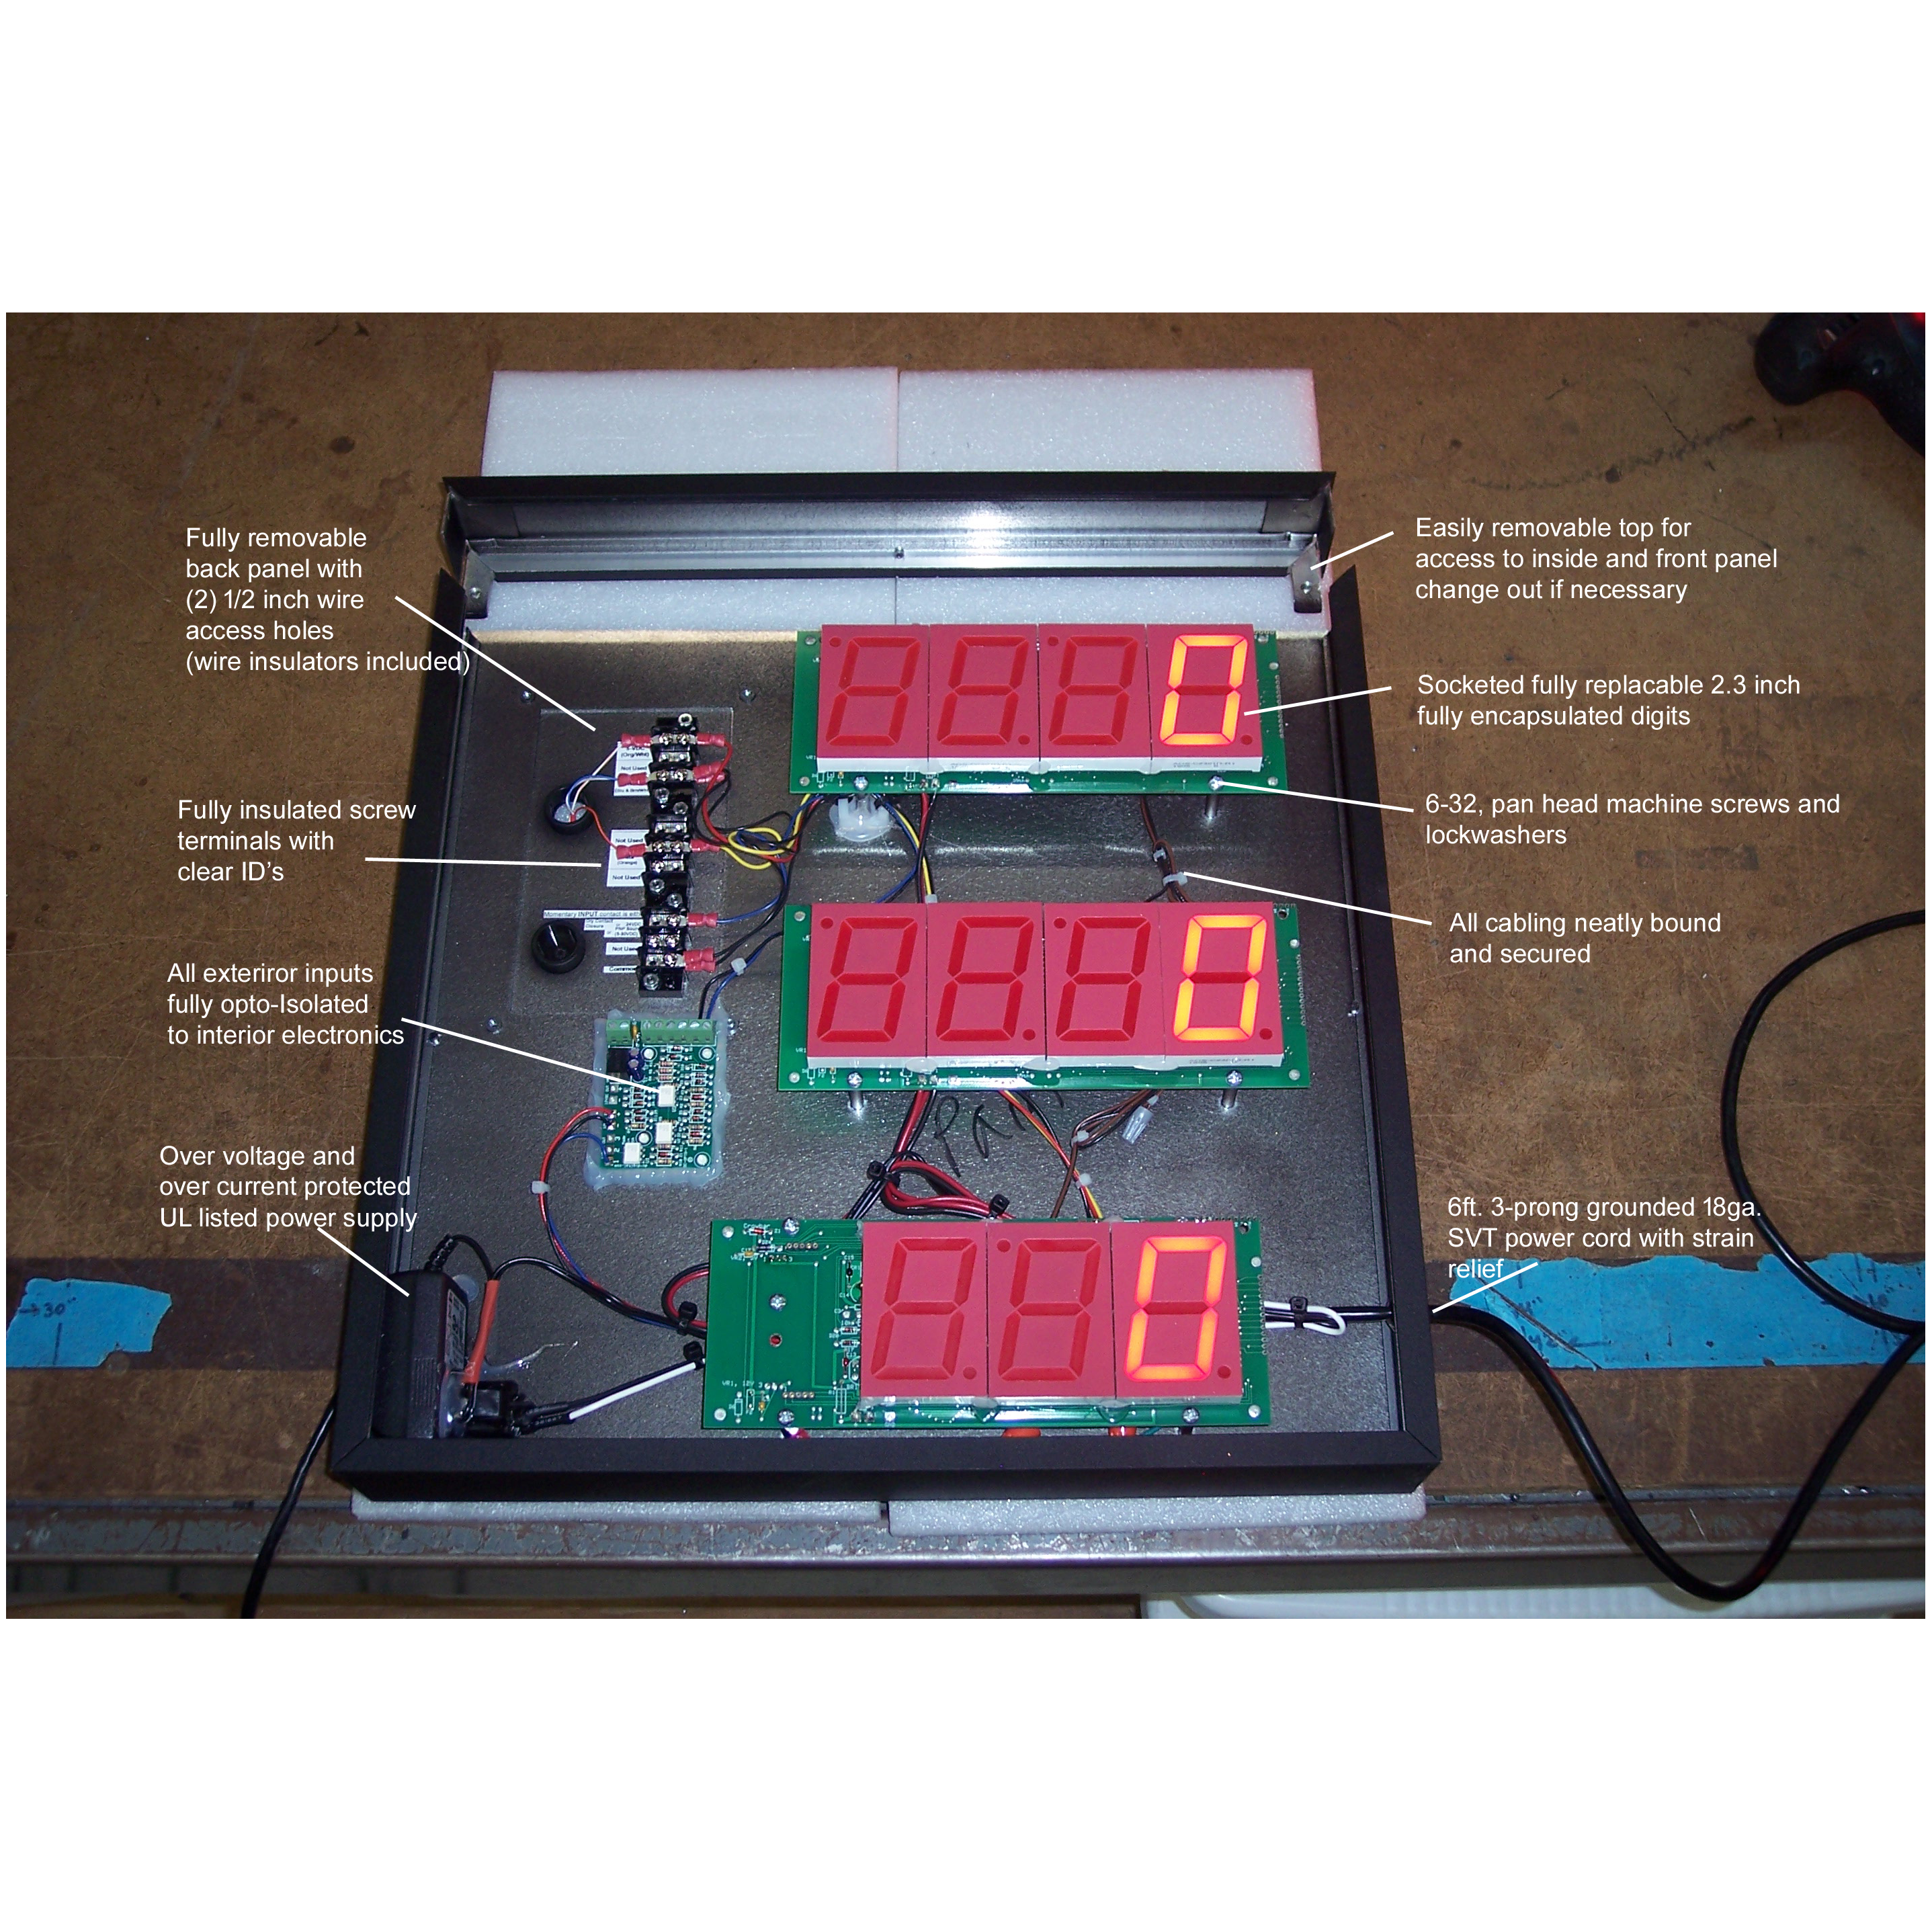 """(DC-25C-2-EFF-RP) 2.3 Inch LED Digital Production Efficiency Counter with Wired 40mm Palm Switch for """"Actual"""" Count and Wired Environmentally Sealed Push-Buttons for Setting the """"Planned"""" Count 1"""